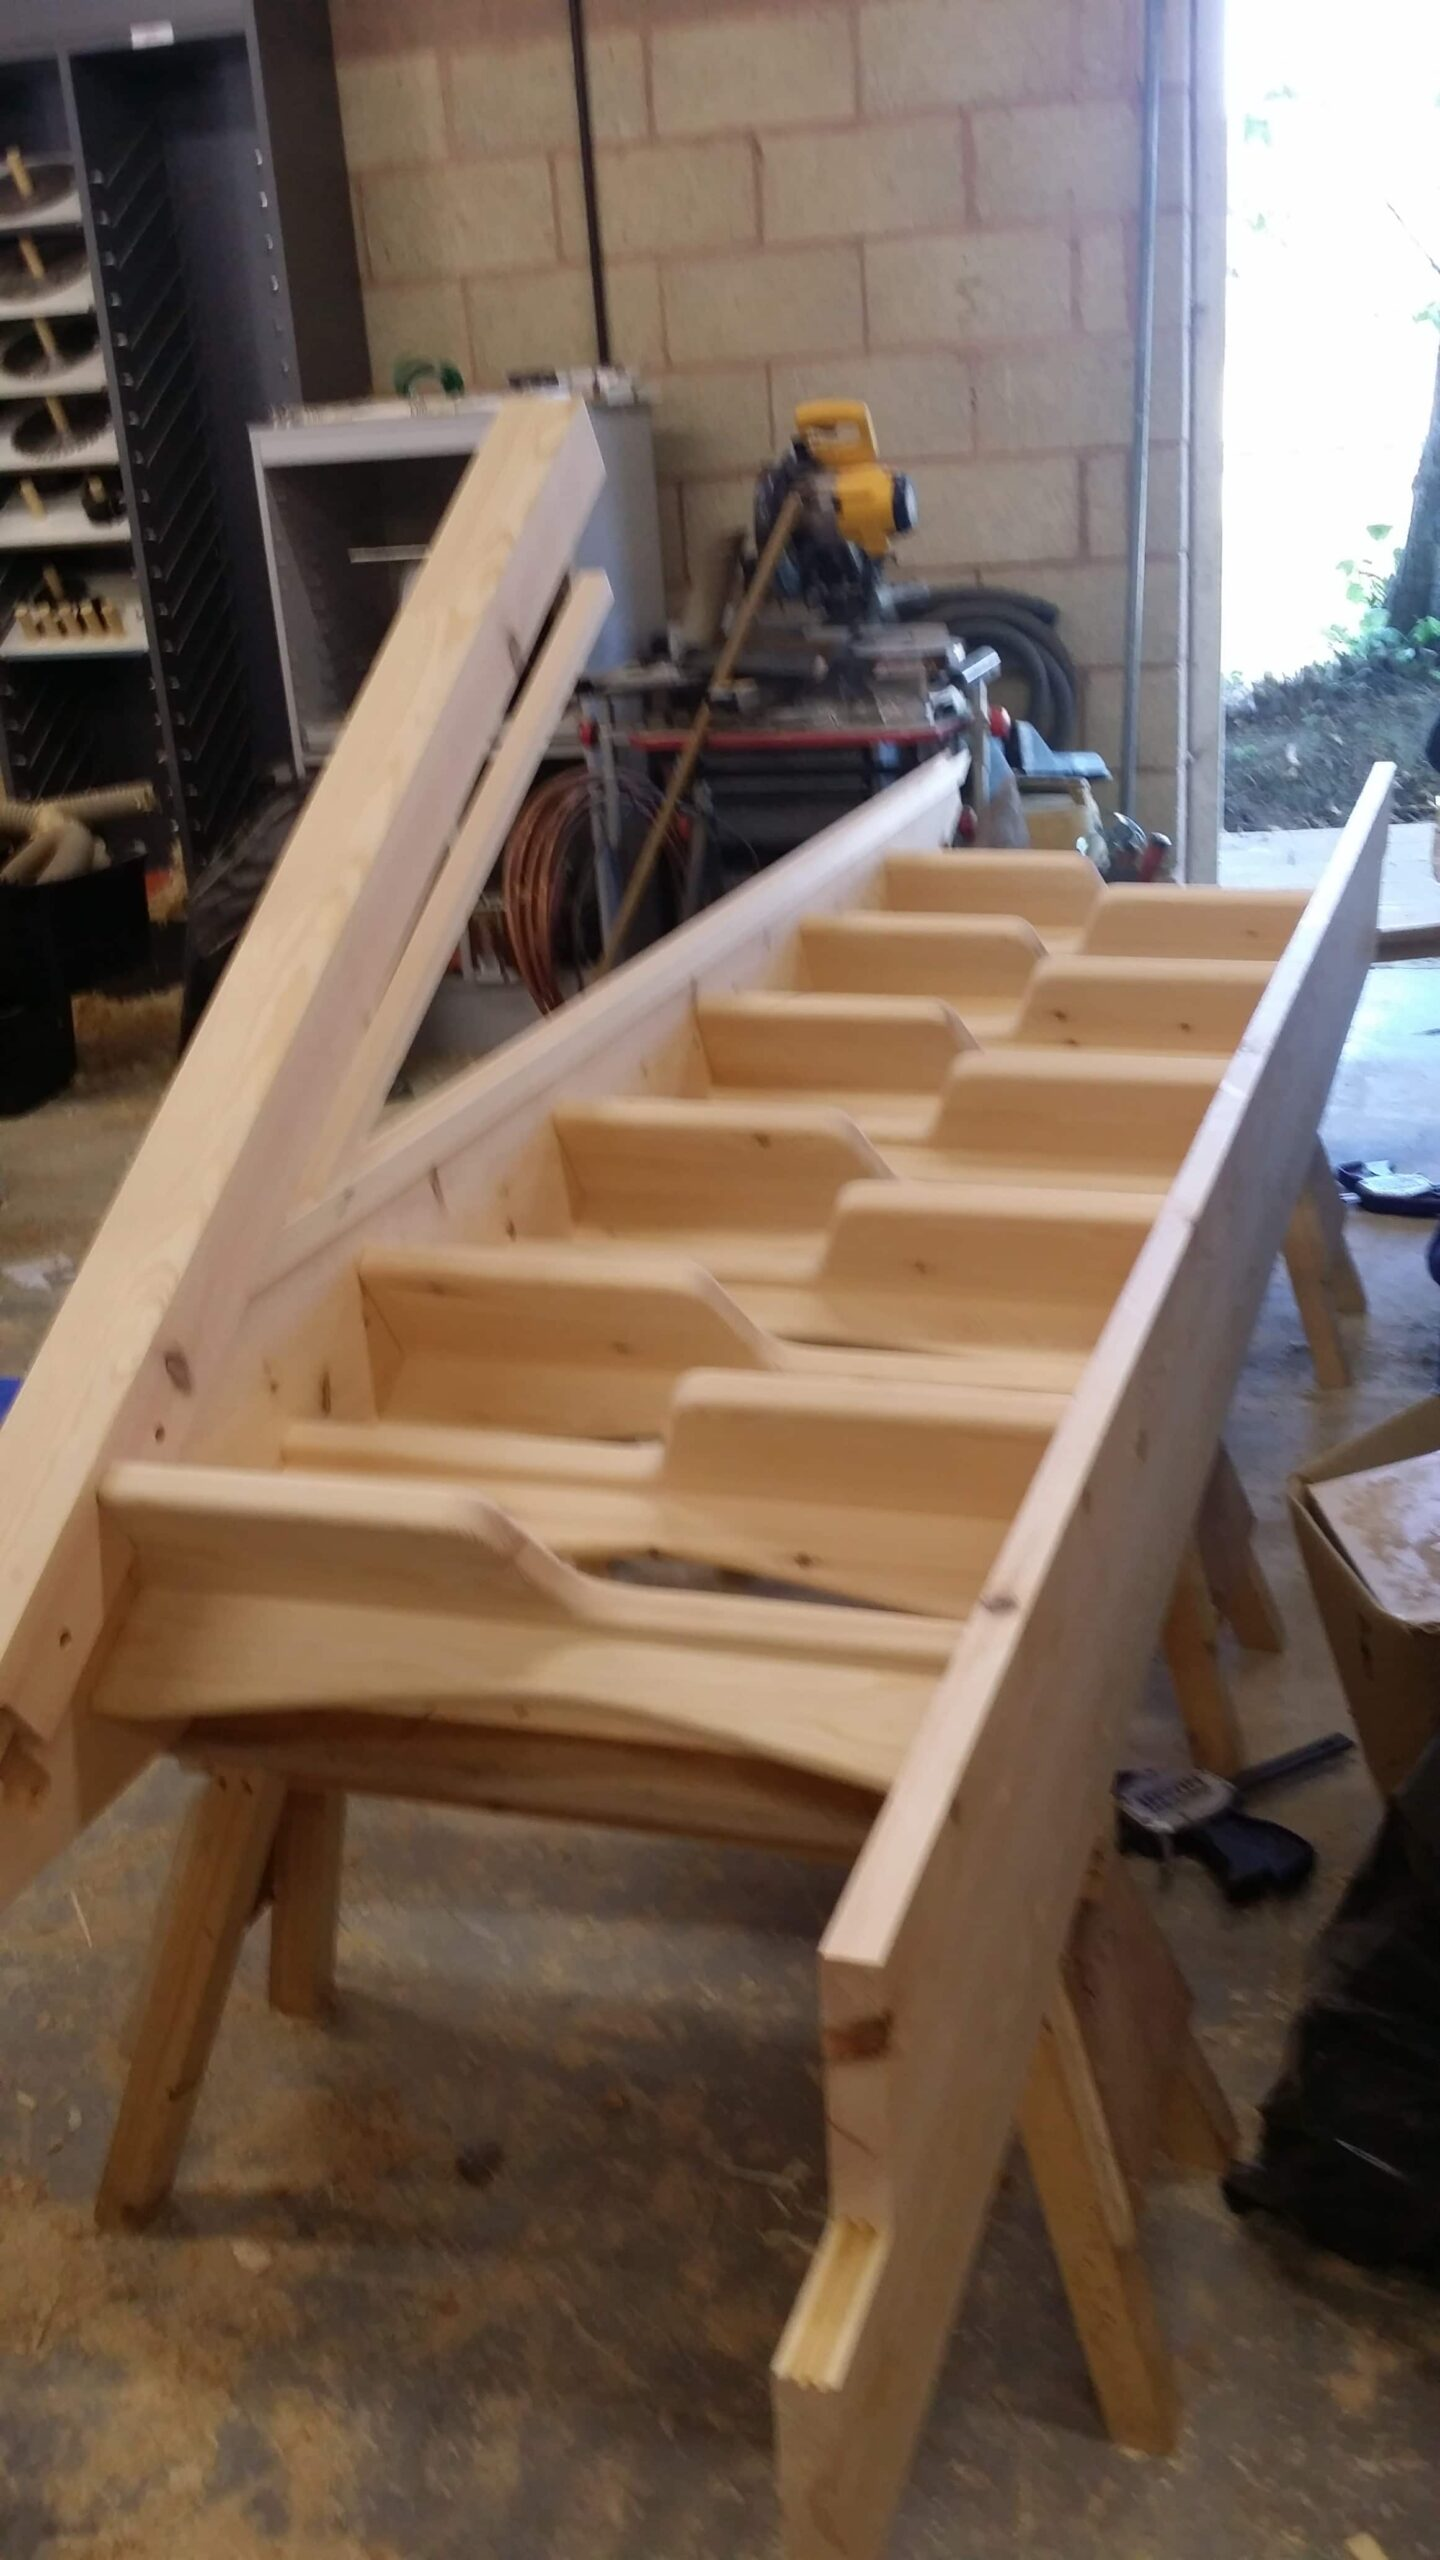 Staircase in progress at our workshop